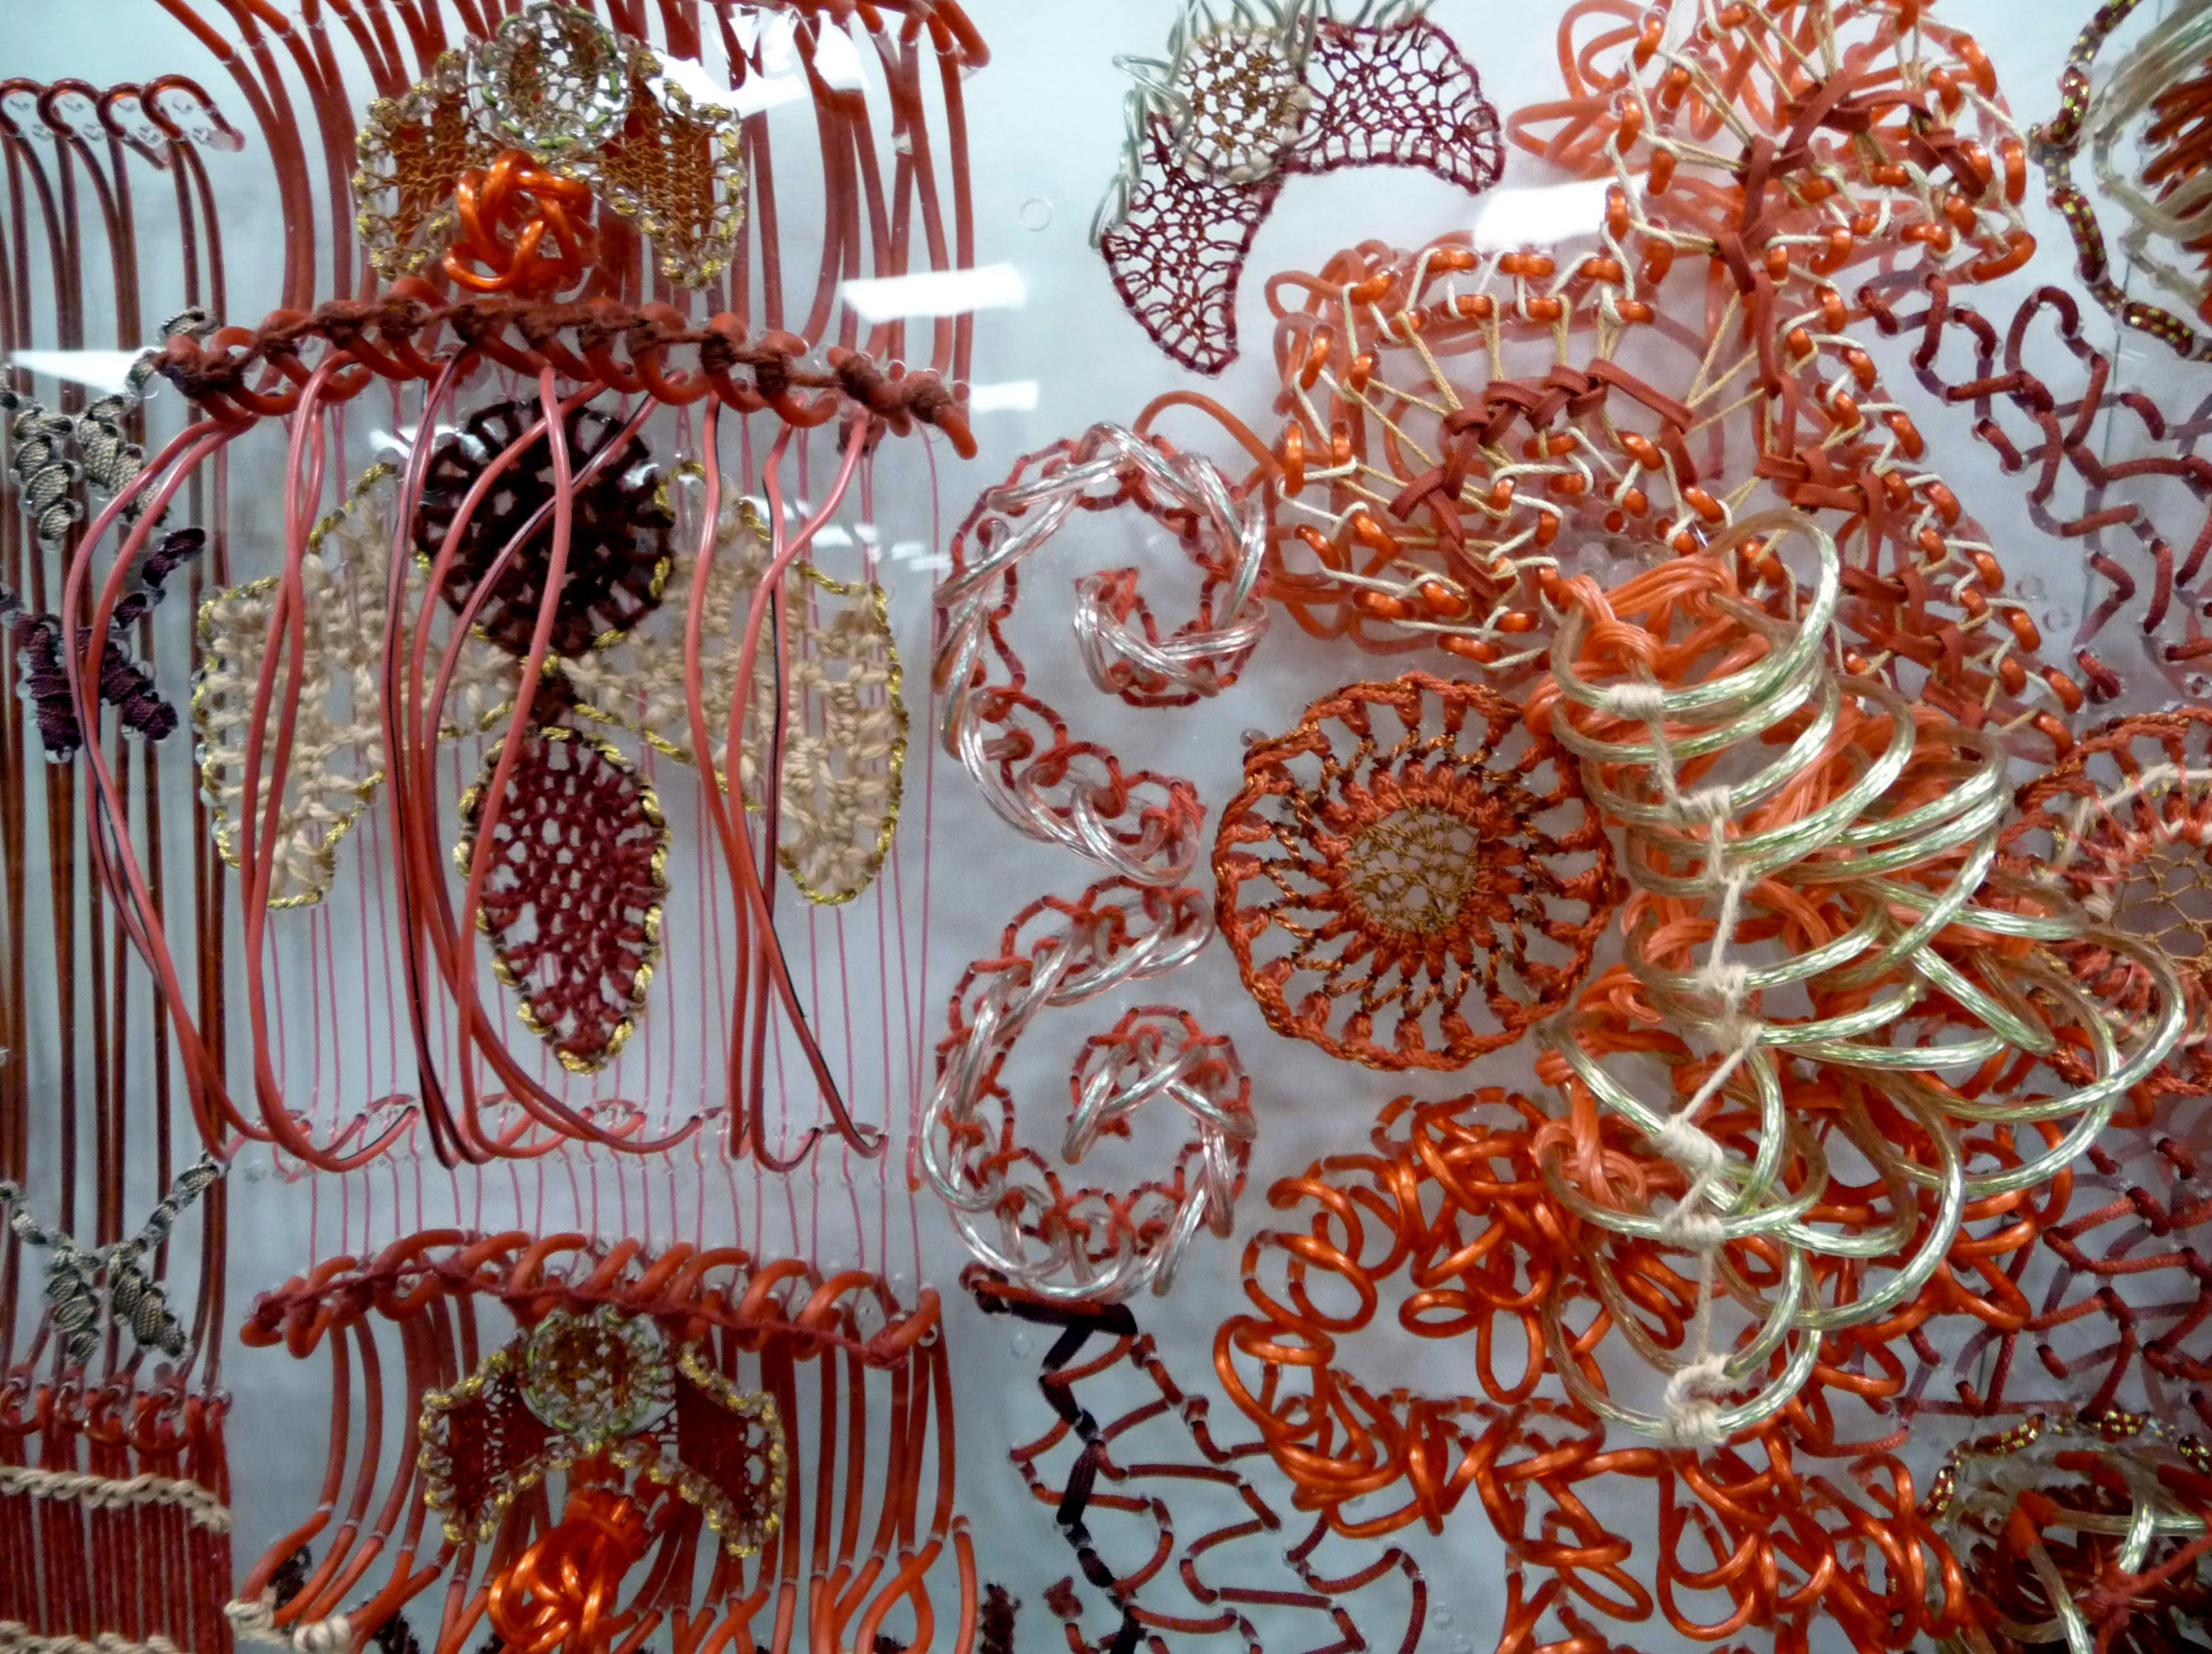 detail of SAMPLED by Bella May Leonard, artist in residence at Gawthorpe Hall 2013. Stitch on pierced perspex.